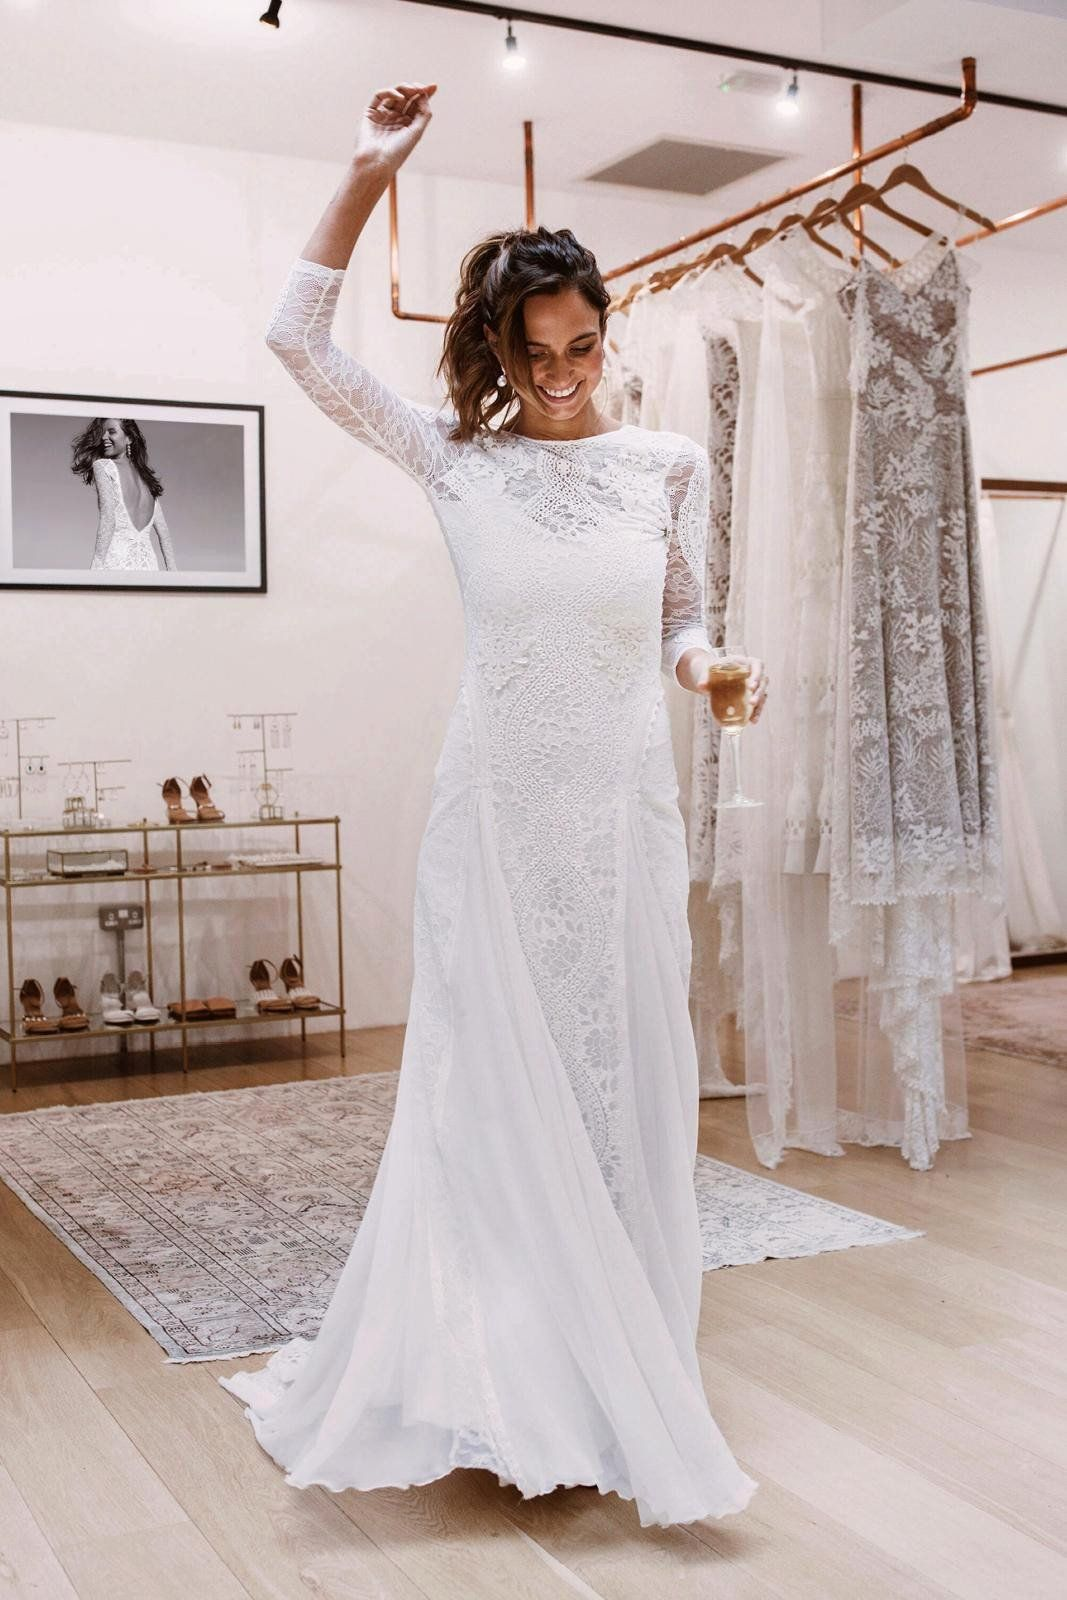 Wedding Dress Tailoring Prices Luxury Fresh Average Cost Wedding Dress Alterations In 2020 Wedding Dresses Wedding Gown Accessories Wedding Dresses Lace